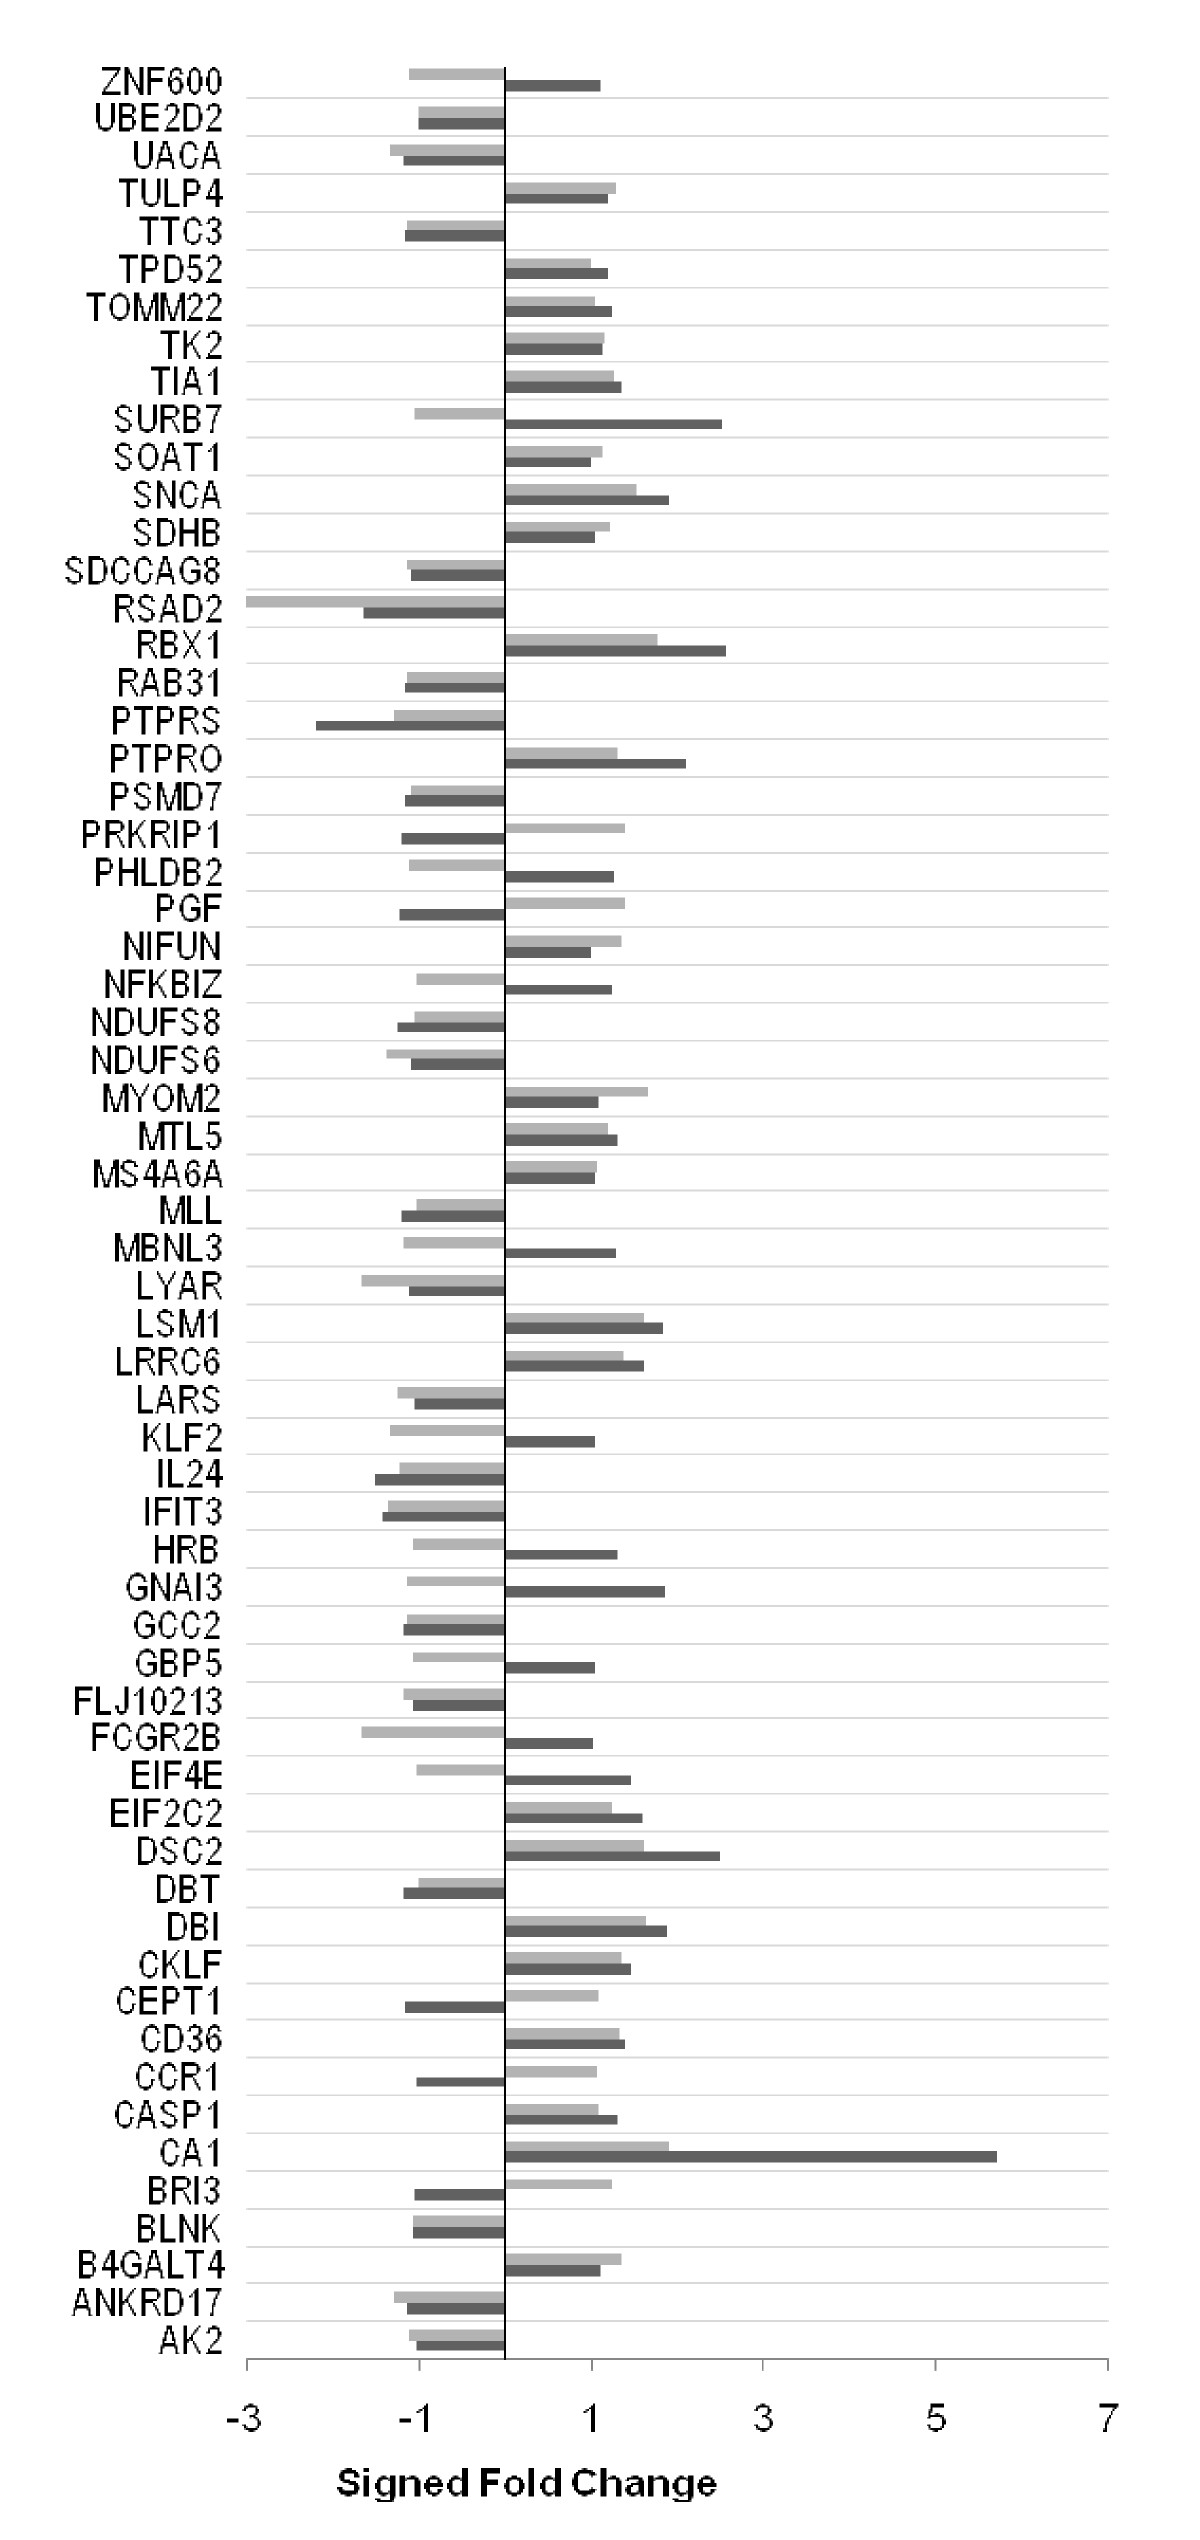 http://static-content.springer.com/image/art%3A10.1186%2F1755-8794-3-56/MediaObjects/12920_2010_Article_191_Fig1_HTML.jpg